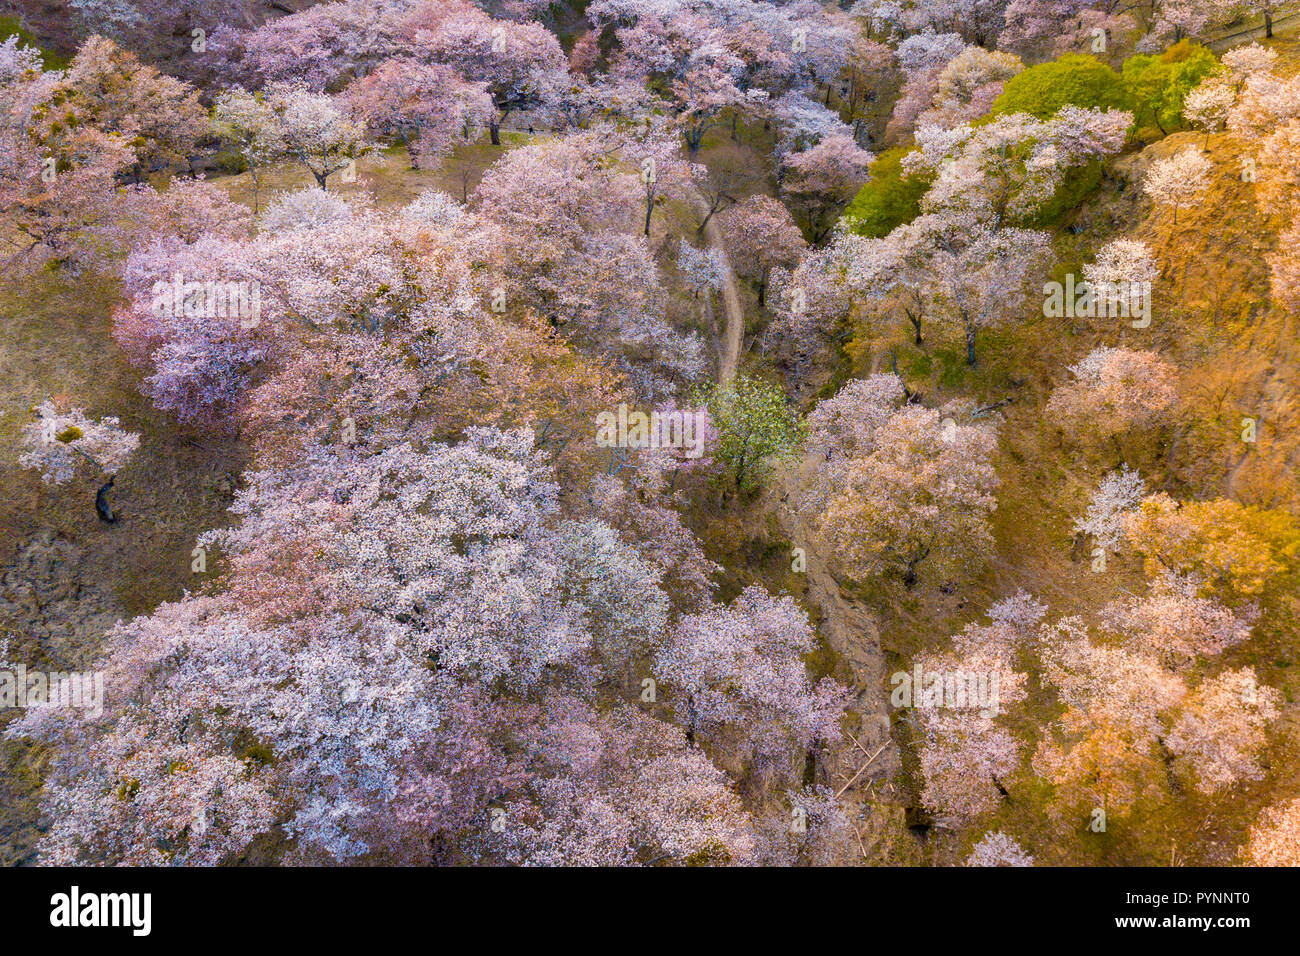 Aerial drone view of Yoshino mountain covered by full blossom cherry trees, Nara province, Japan - Stock Image